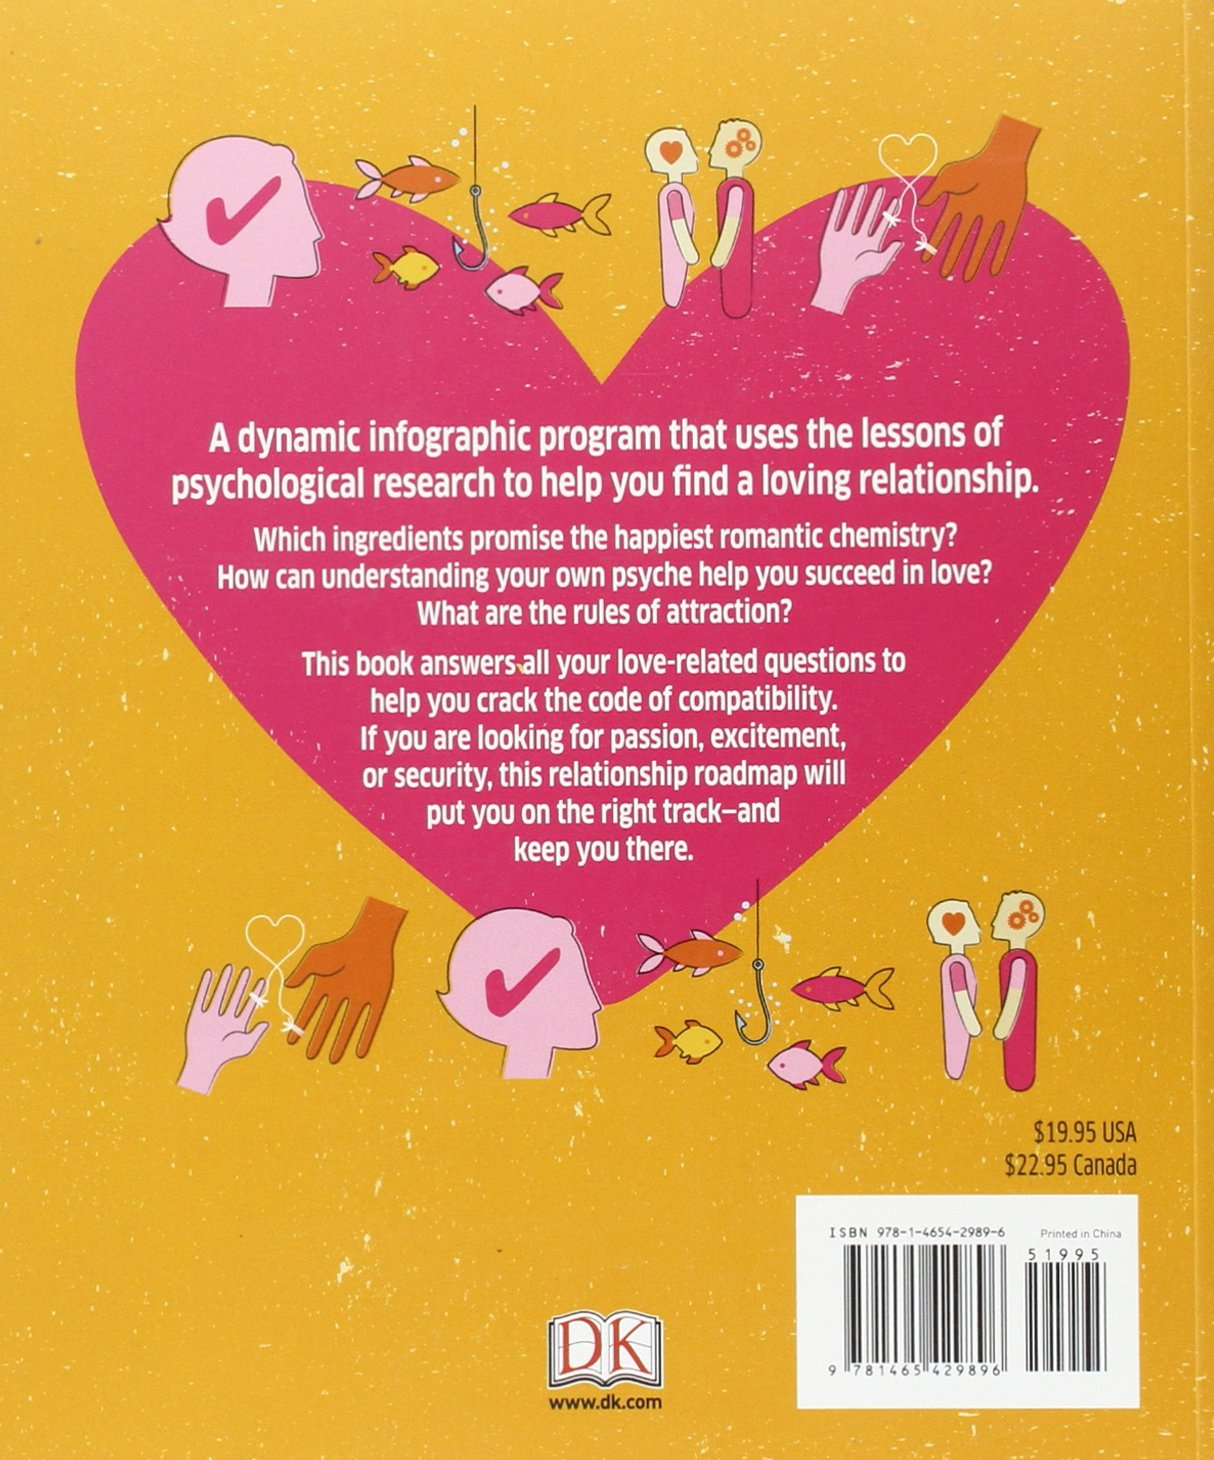 Love: The Psychology Of Attraction: Dk: 9781465429896: Amazon: Books